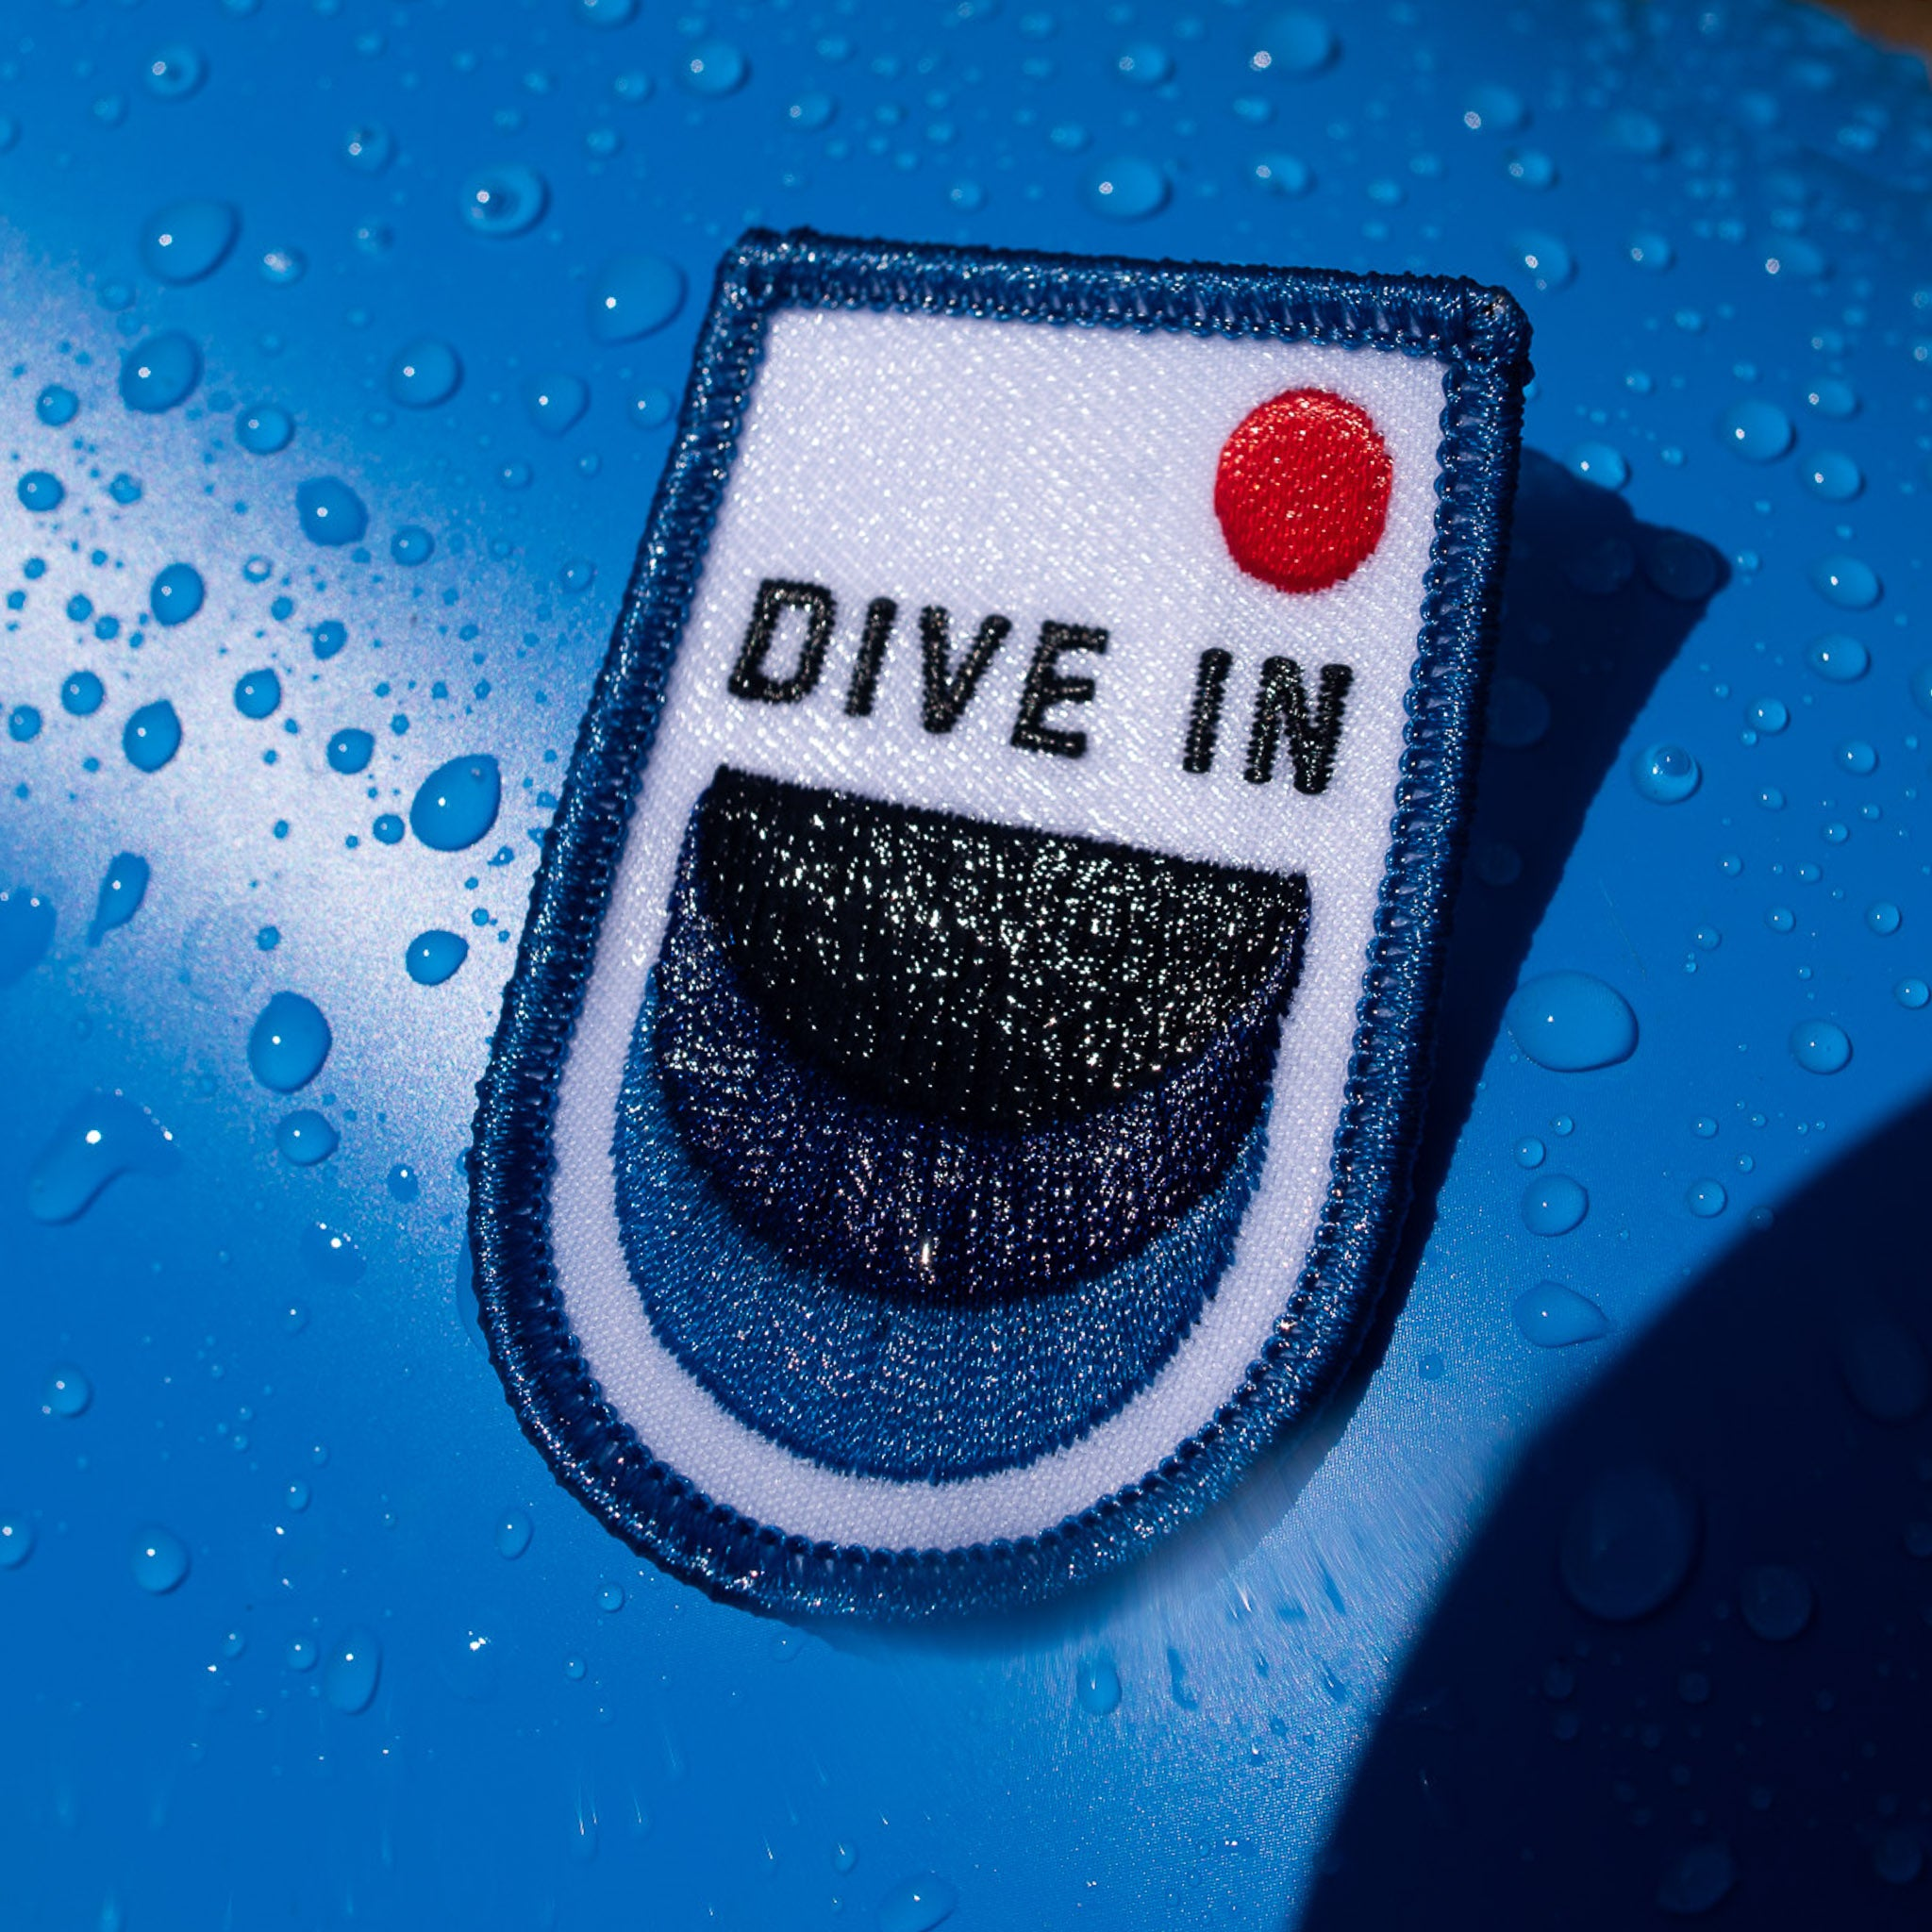 Merch: DIVE IN Patches